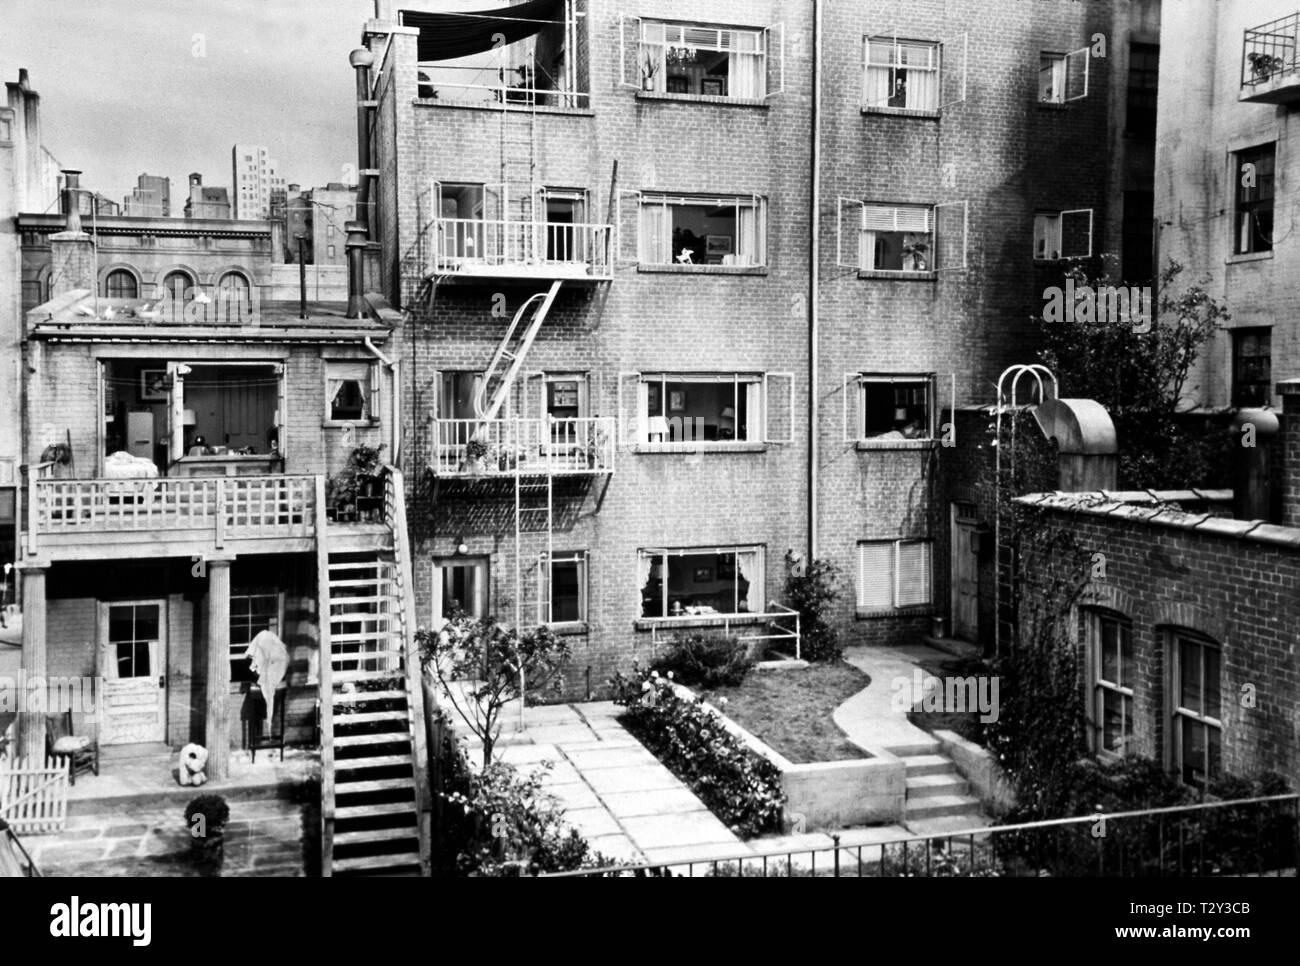 FLATS, GARDEN, REAR WINDOW, 1954 - Stock Image